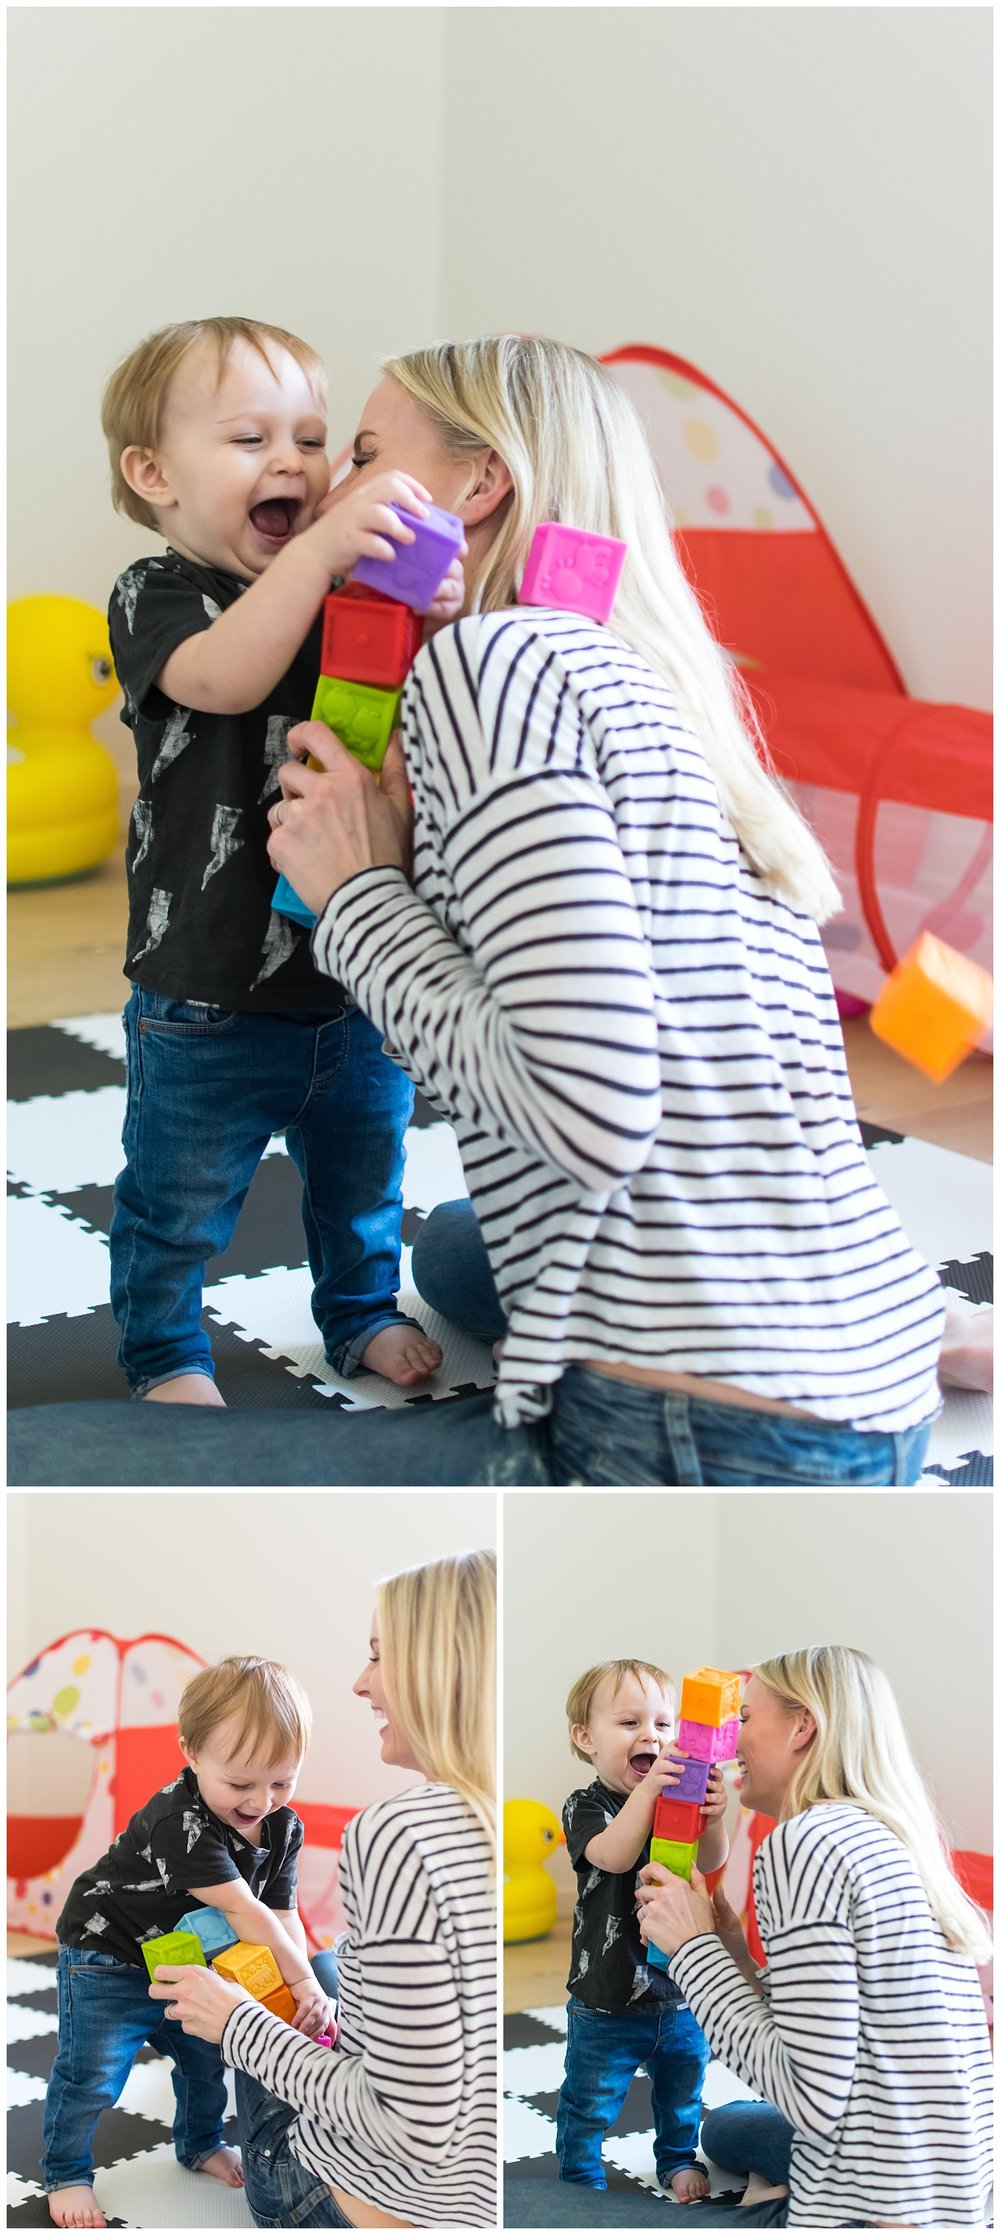 these are images of a mother and a toddler during a mommy and me session playing with blocks in the child's playroom.